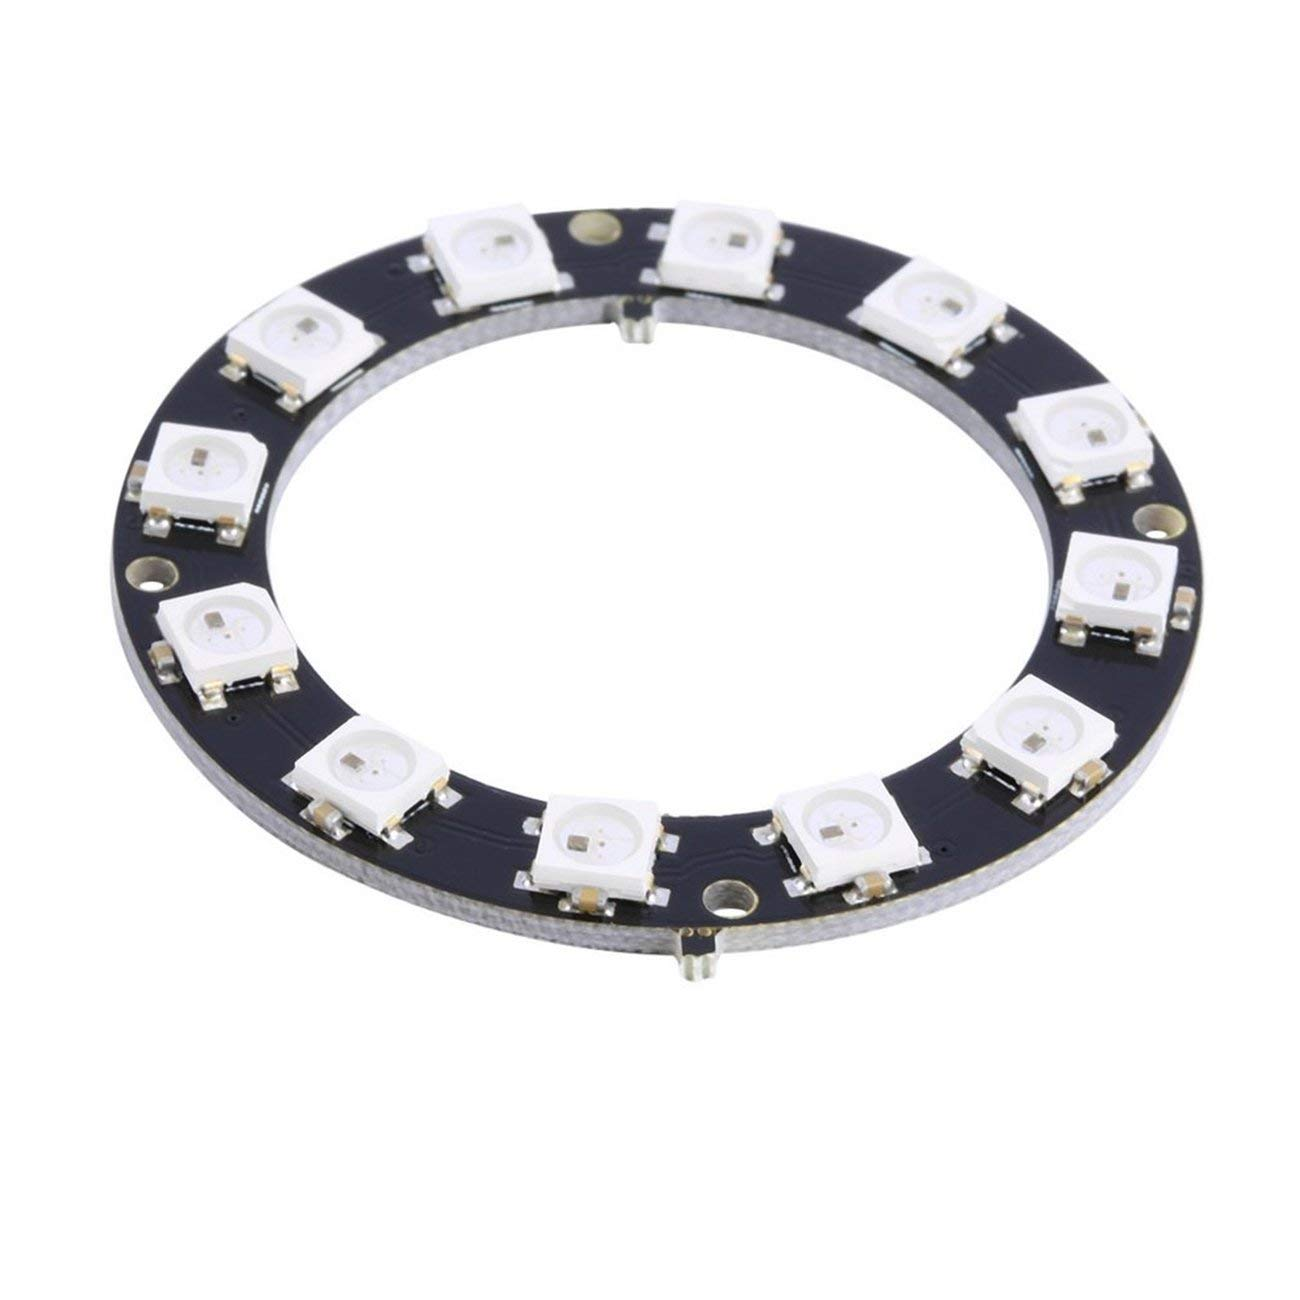 12-Bit WS2812 5050 RGB LED Ring Round Decoration Bulb Perfect For Arduino